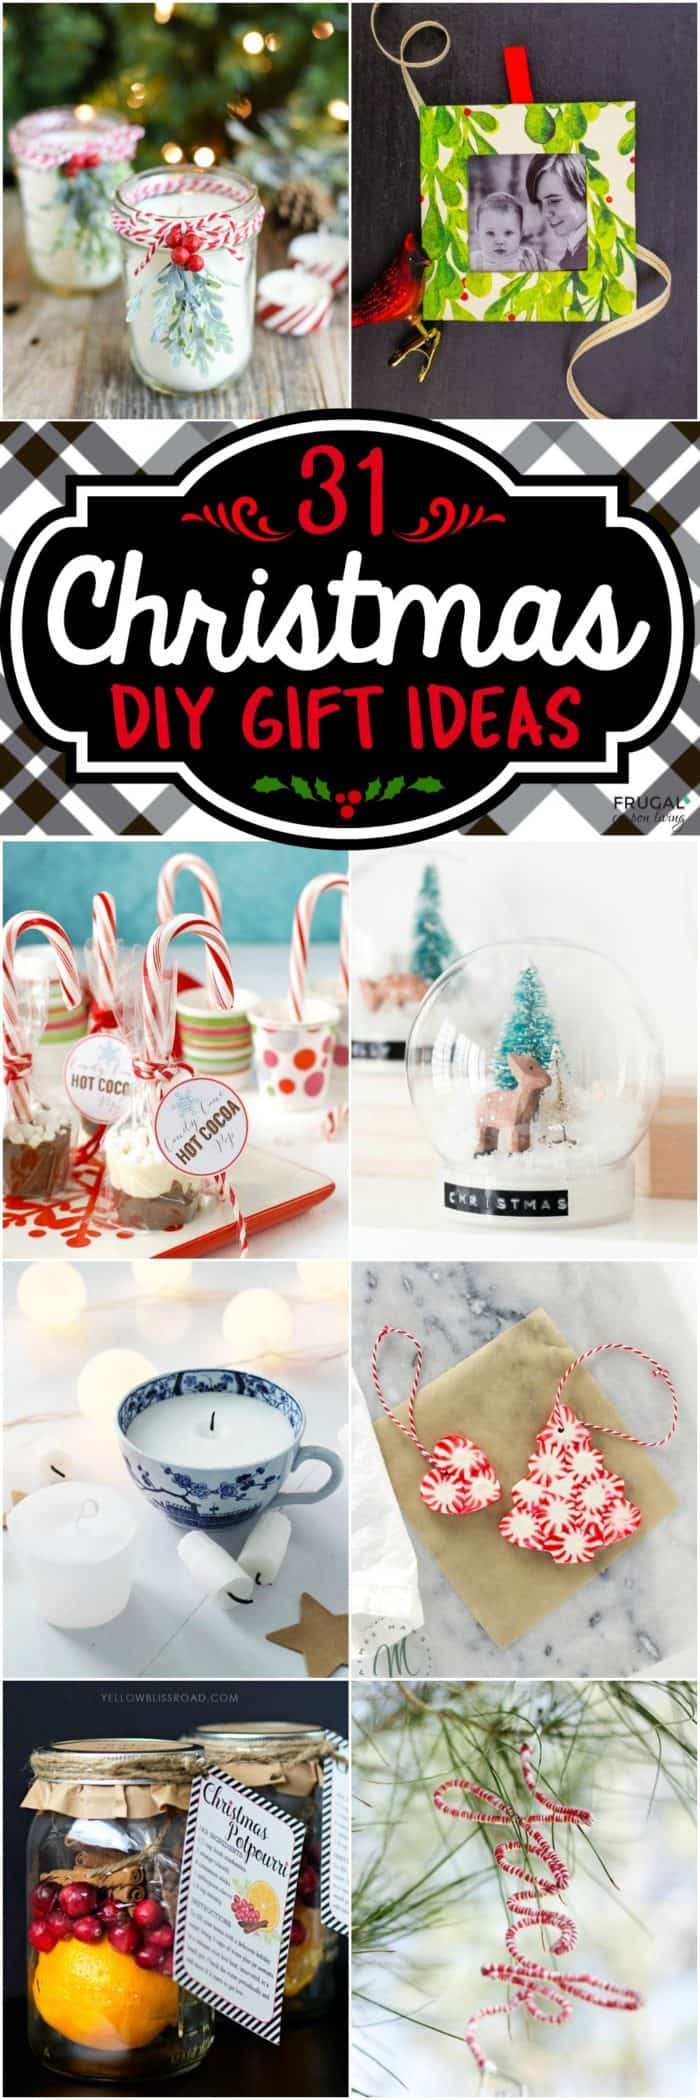 31 Creative and Fun DIY Christmas Gift Ideas - Part Two